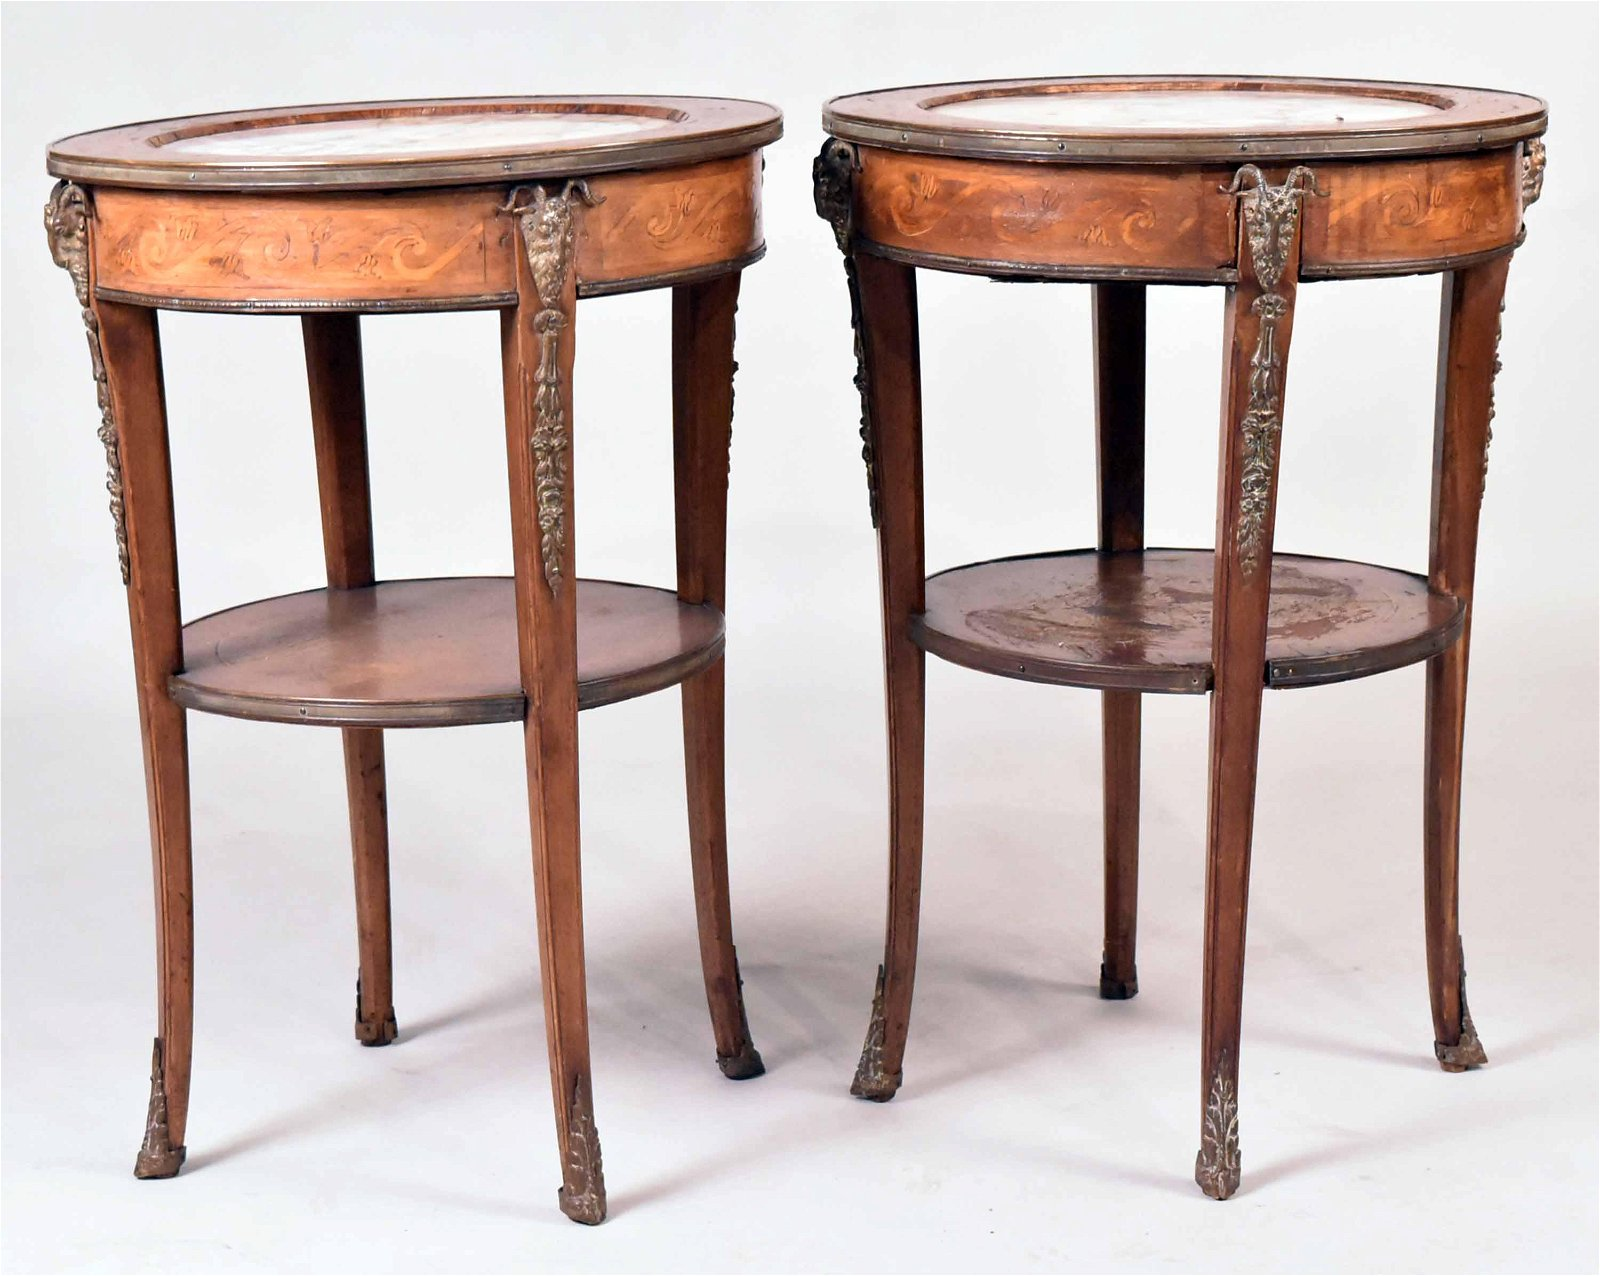 Pair of Louis XVI Marble Top Marquetry Tables